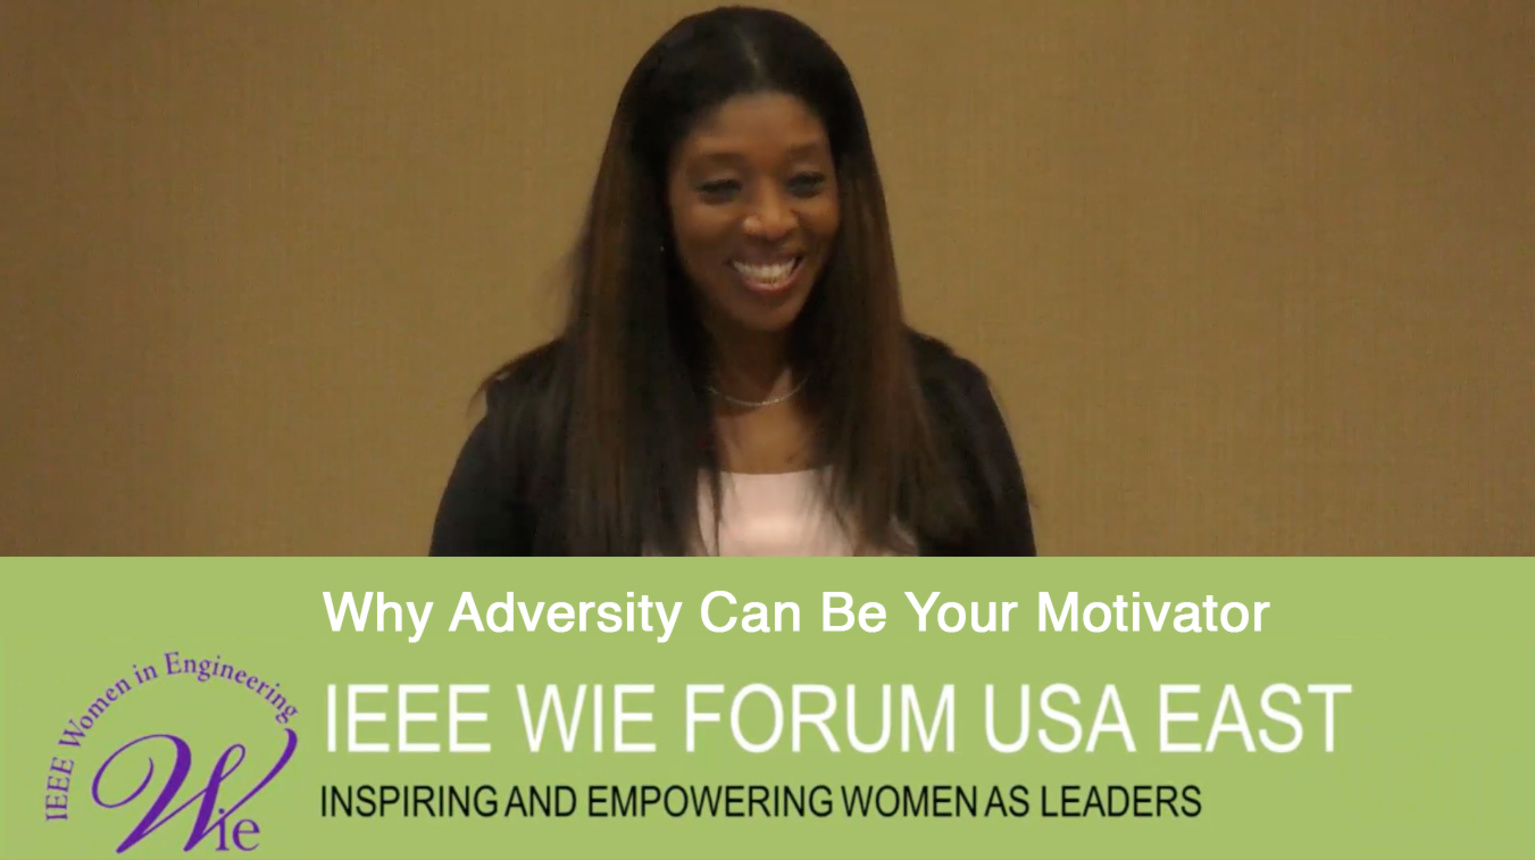 Why Adversity Can Be Your Motivator - Kathy Kountze-Tatum at IEEE WIE Forum USA East 2017